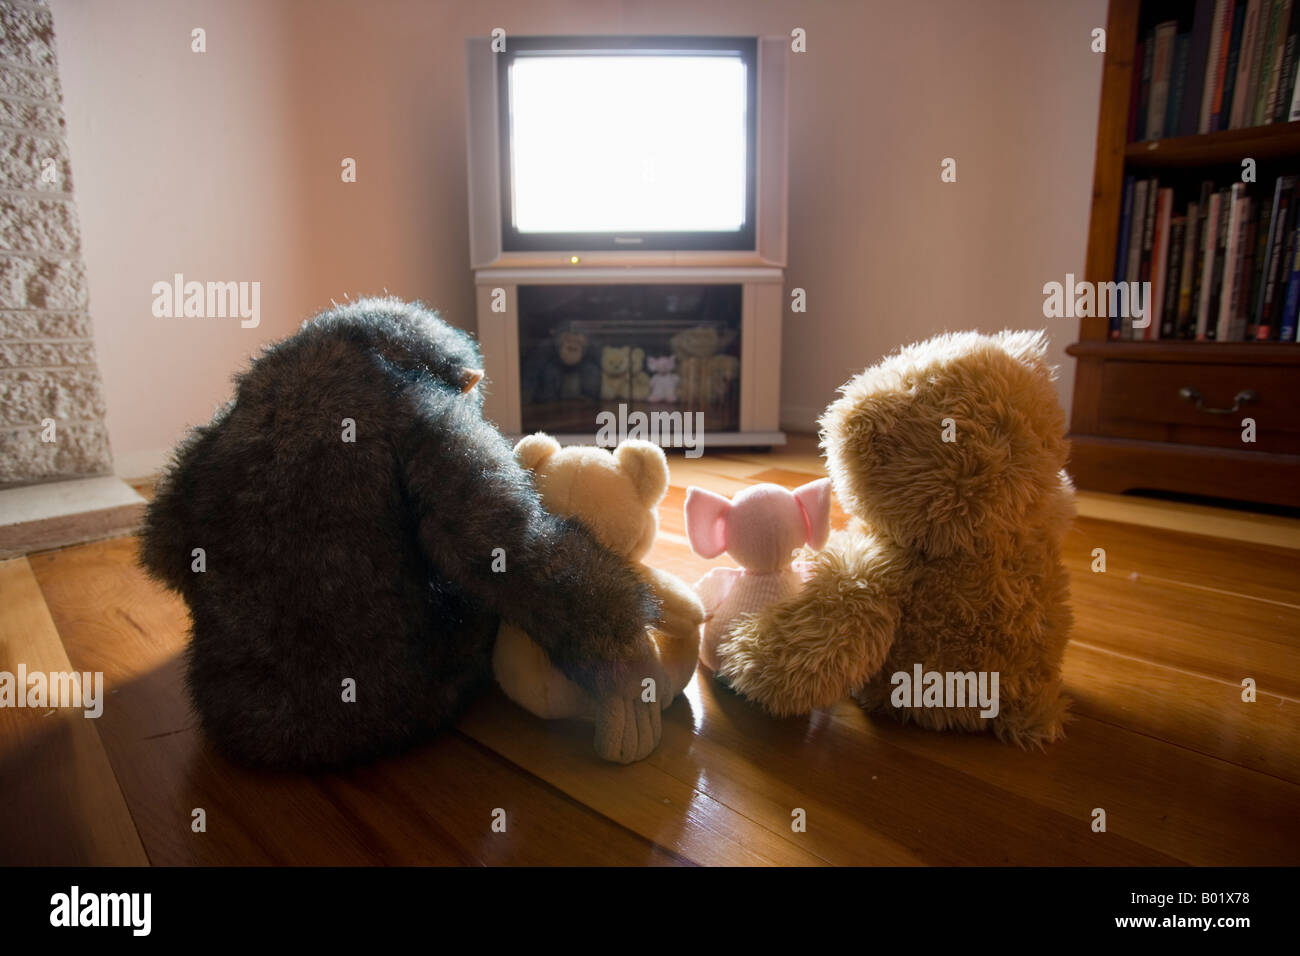 Soft toy animals watch television - Stock Image